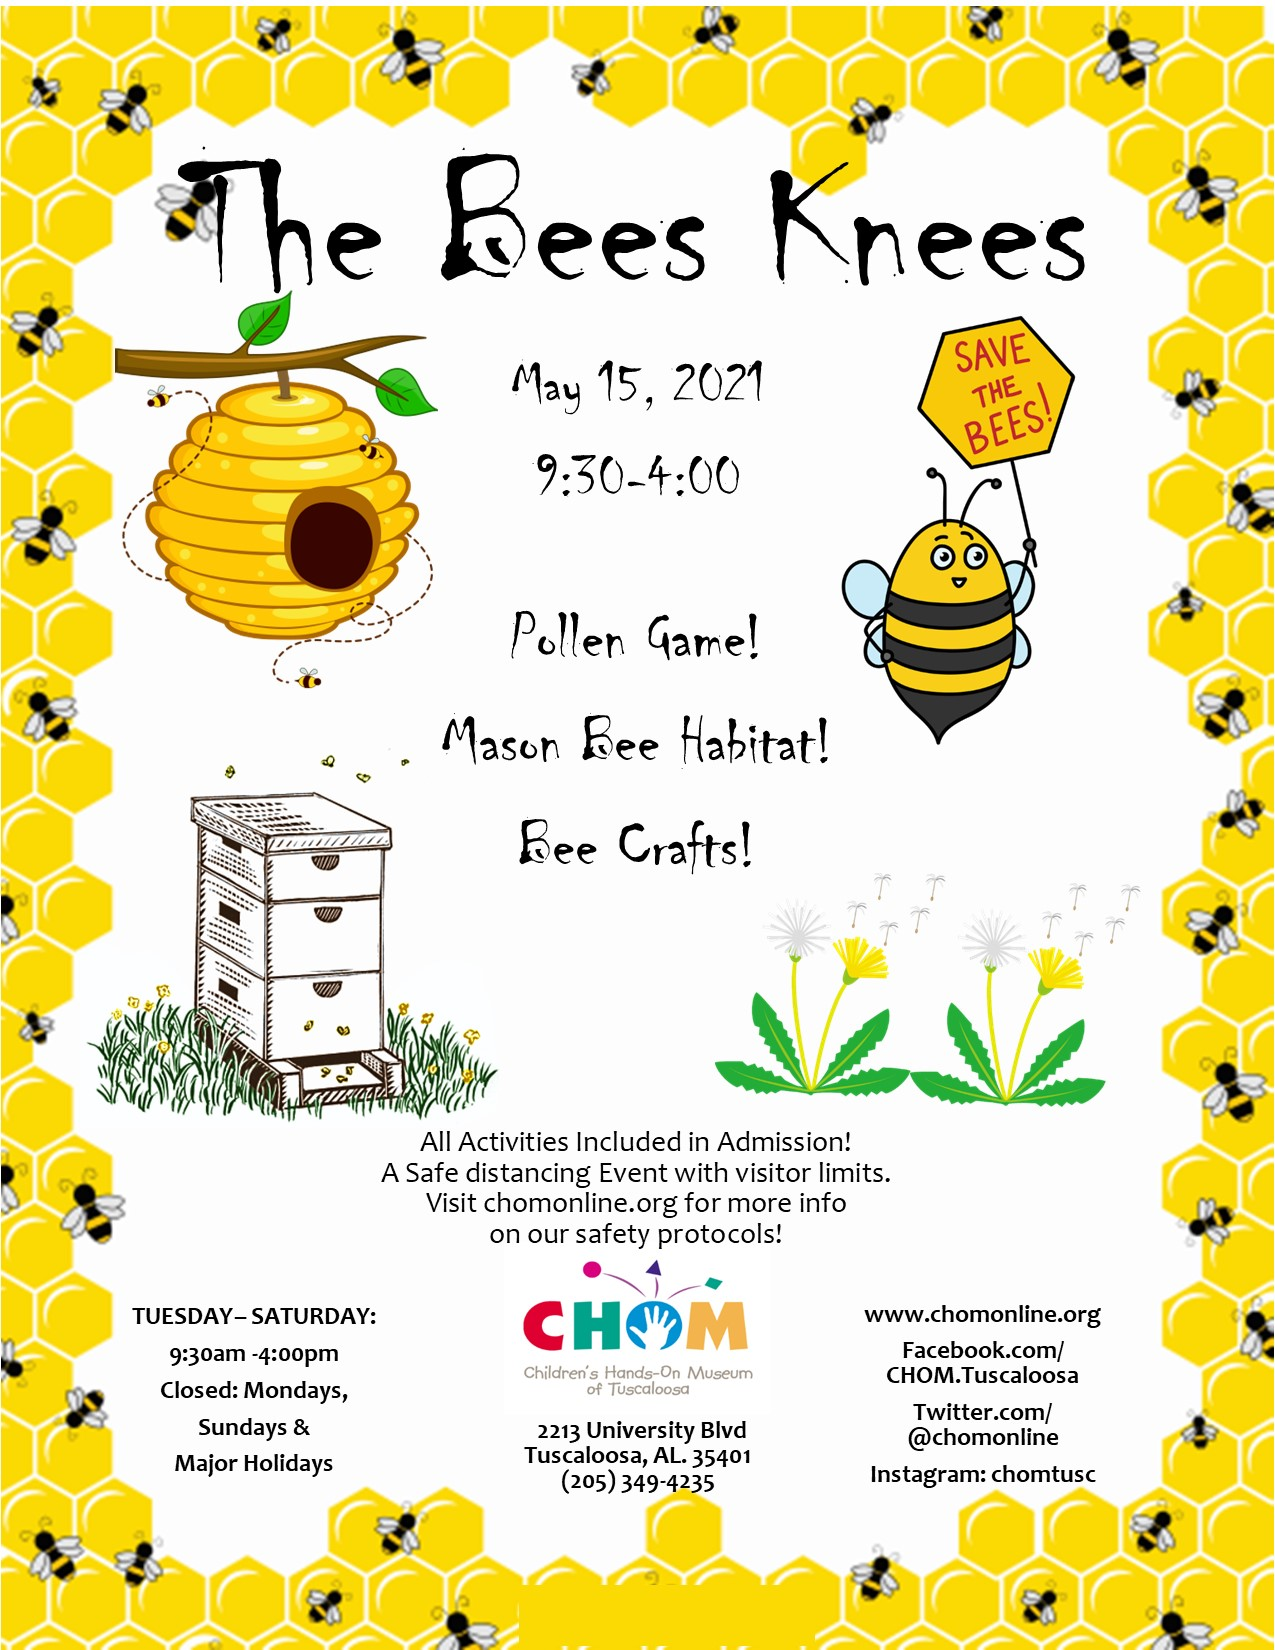 The Bees Knees at CHOM!